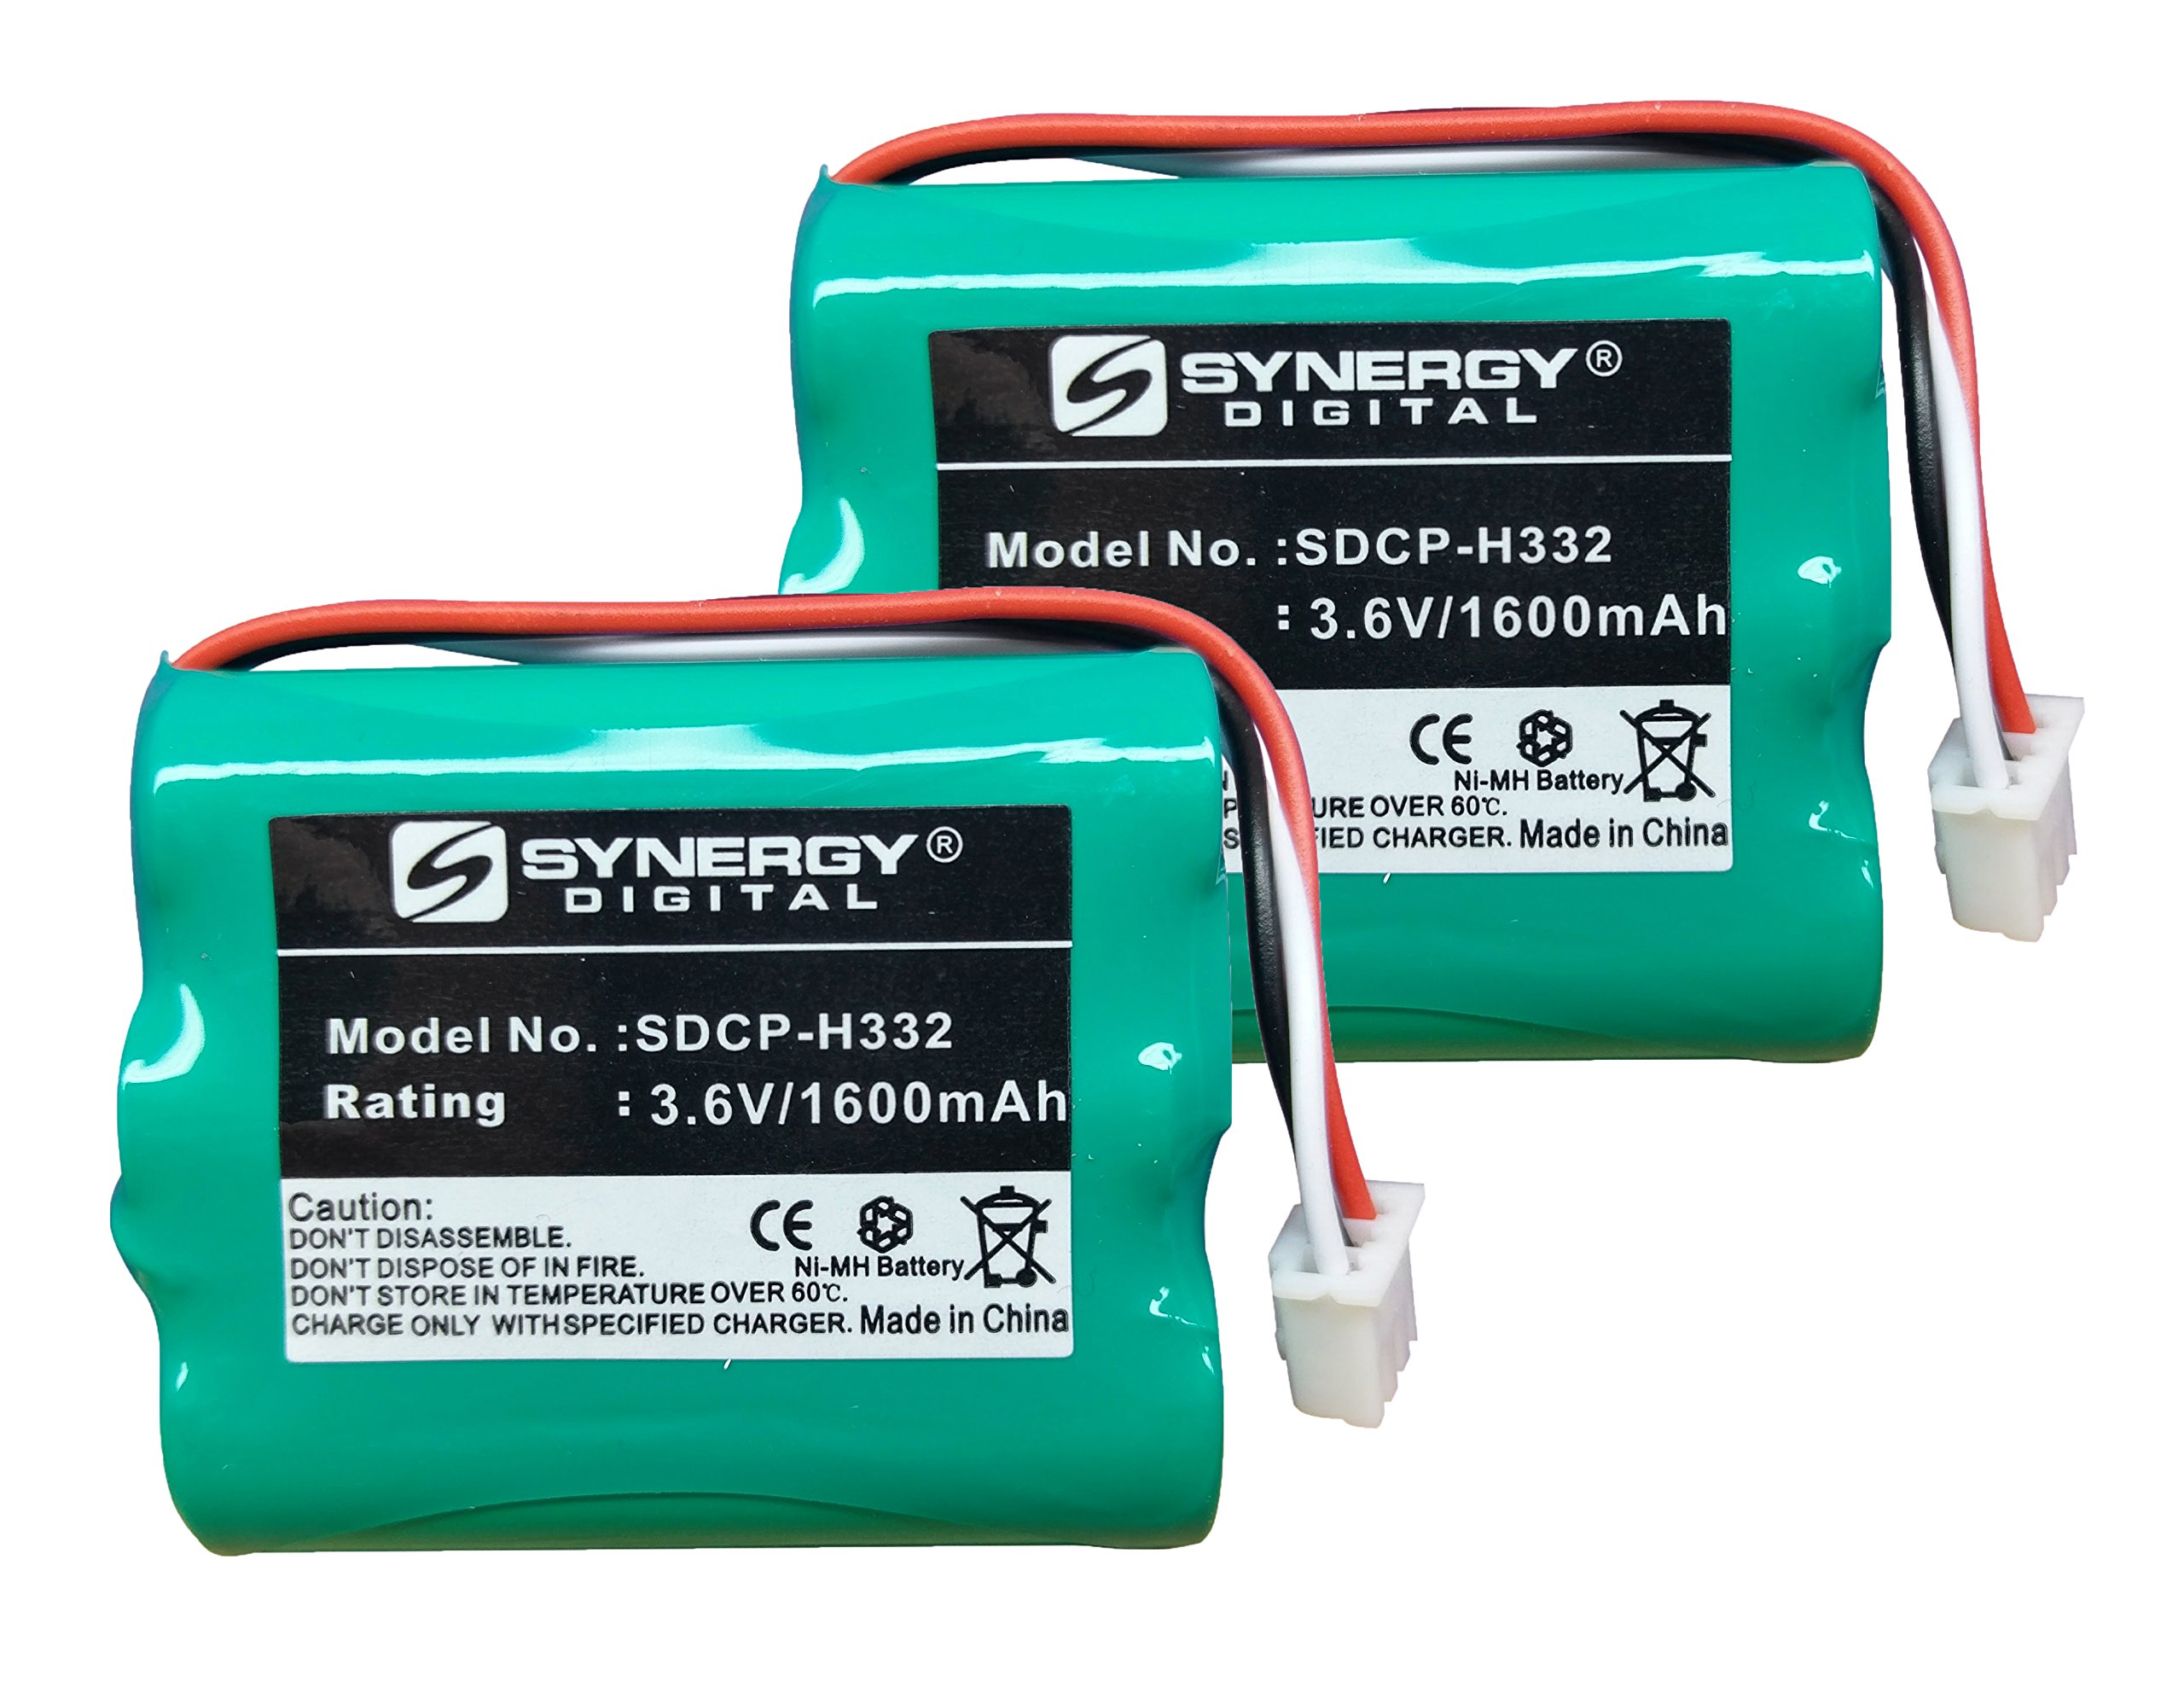 Huawei HOME PHONE CONNECT Cordless Phone Battery Combo-Pack includes: 2 x SDCP-H332 Batteries